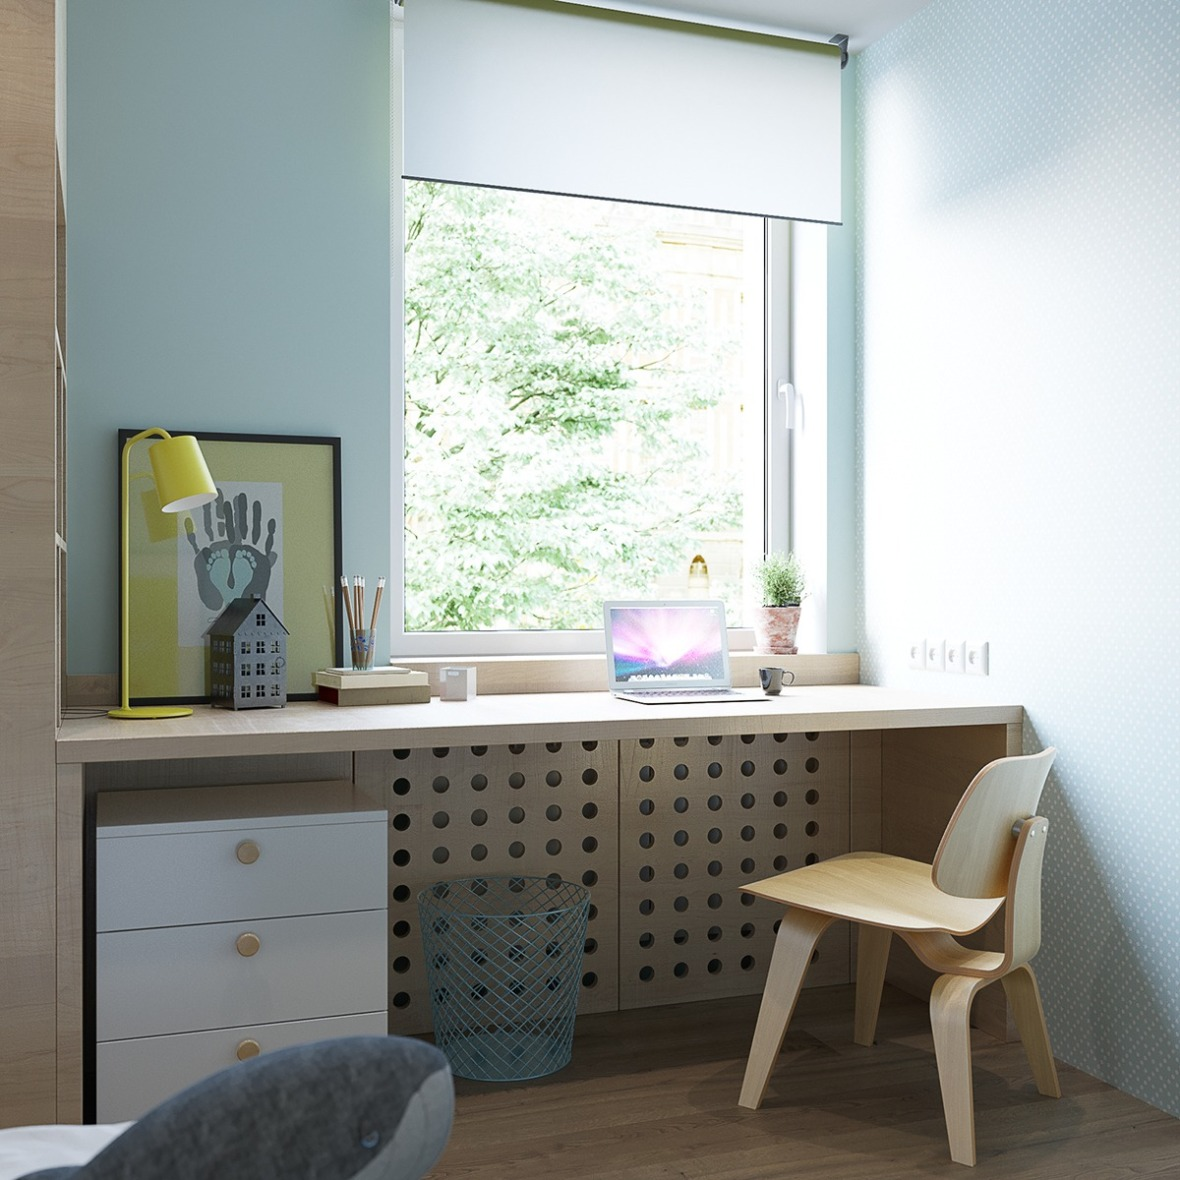 2builtin-desk-workspace-children-room-cabinets